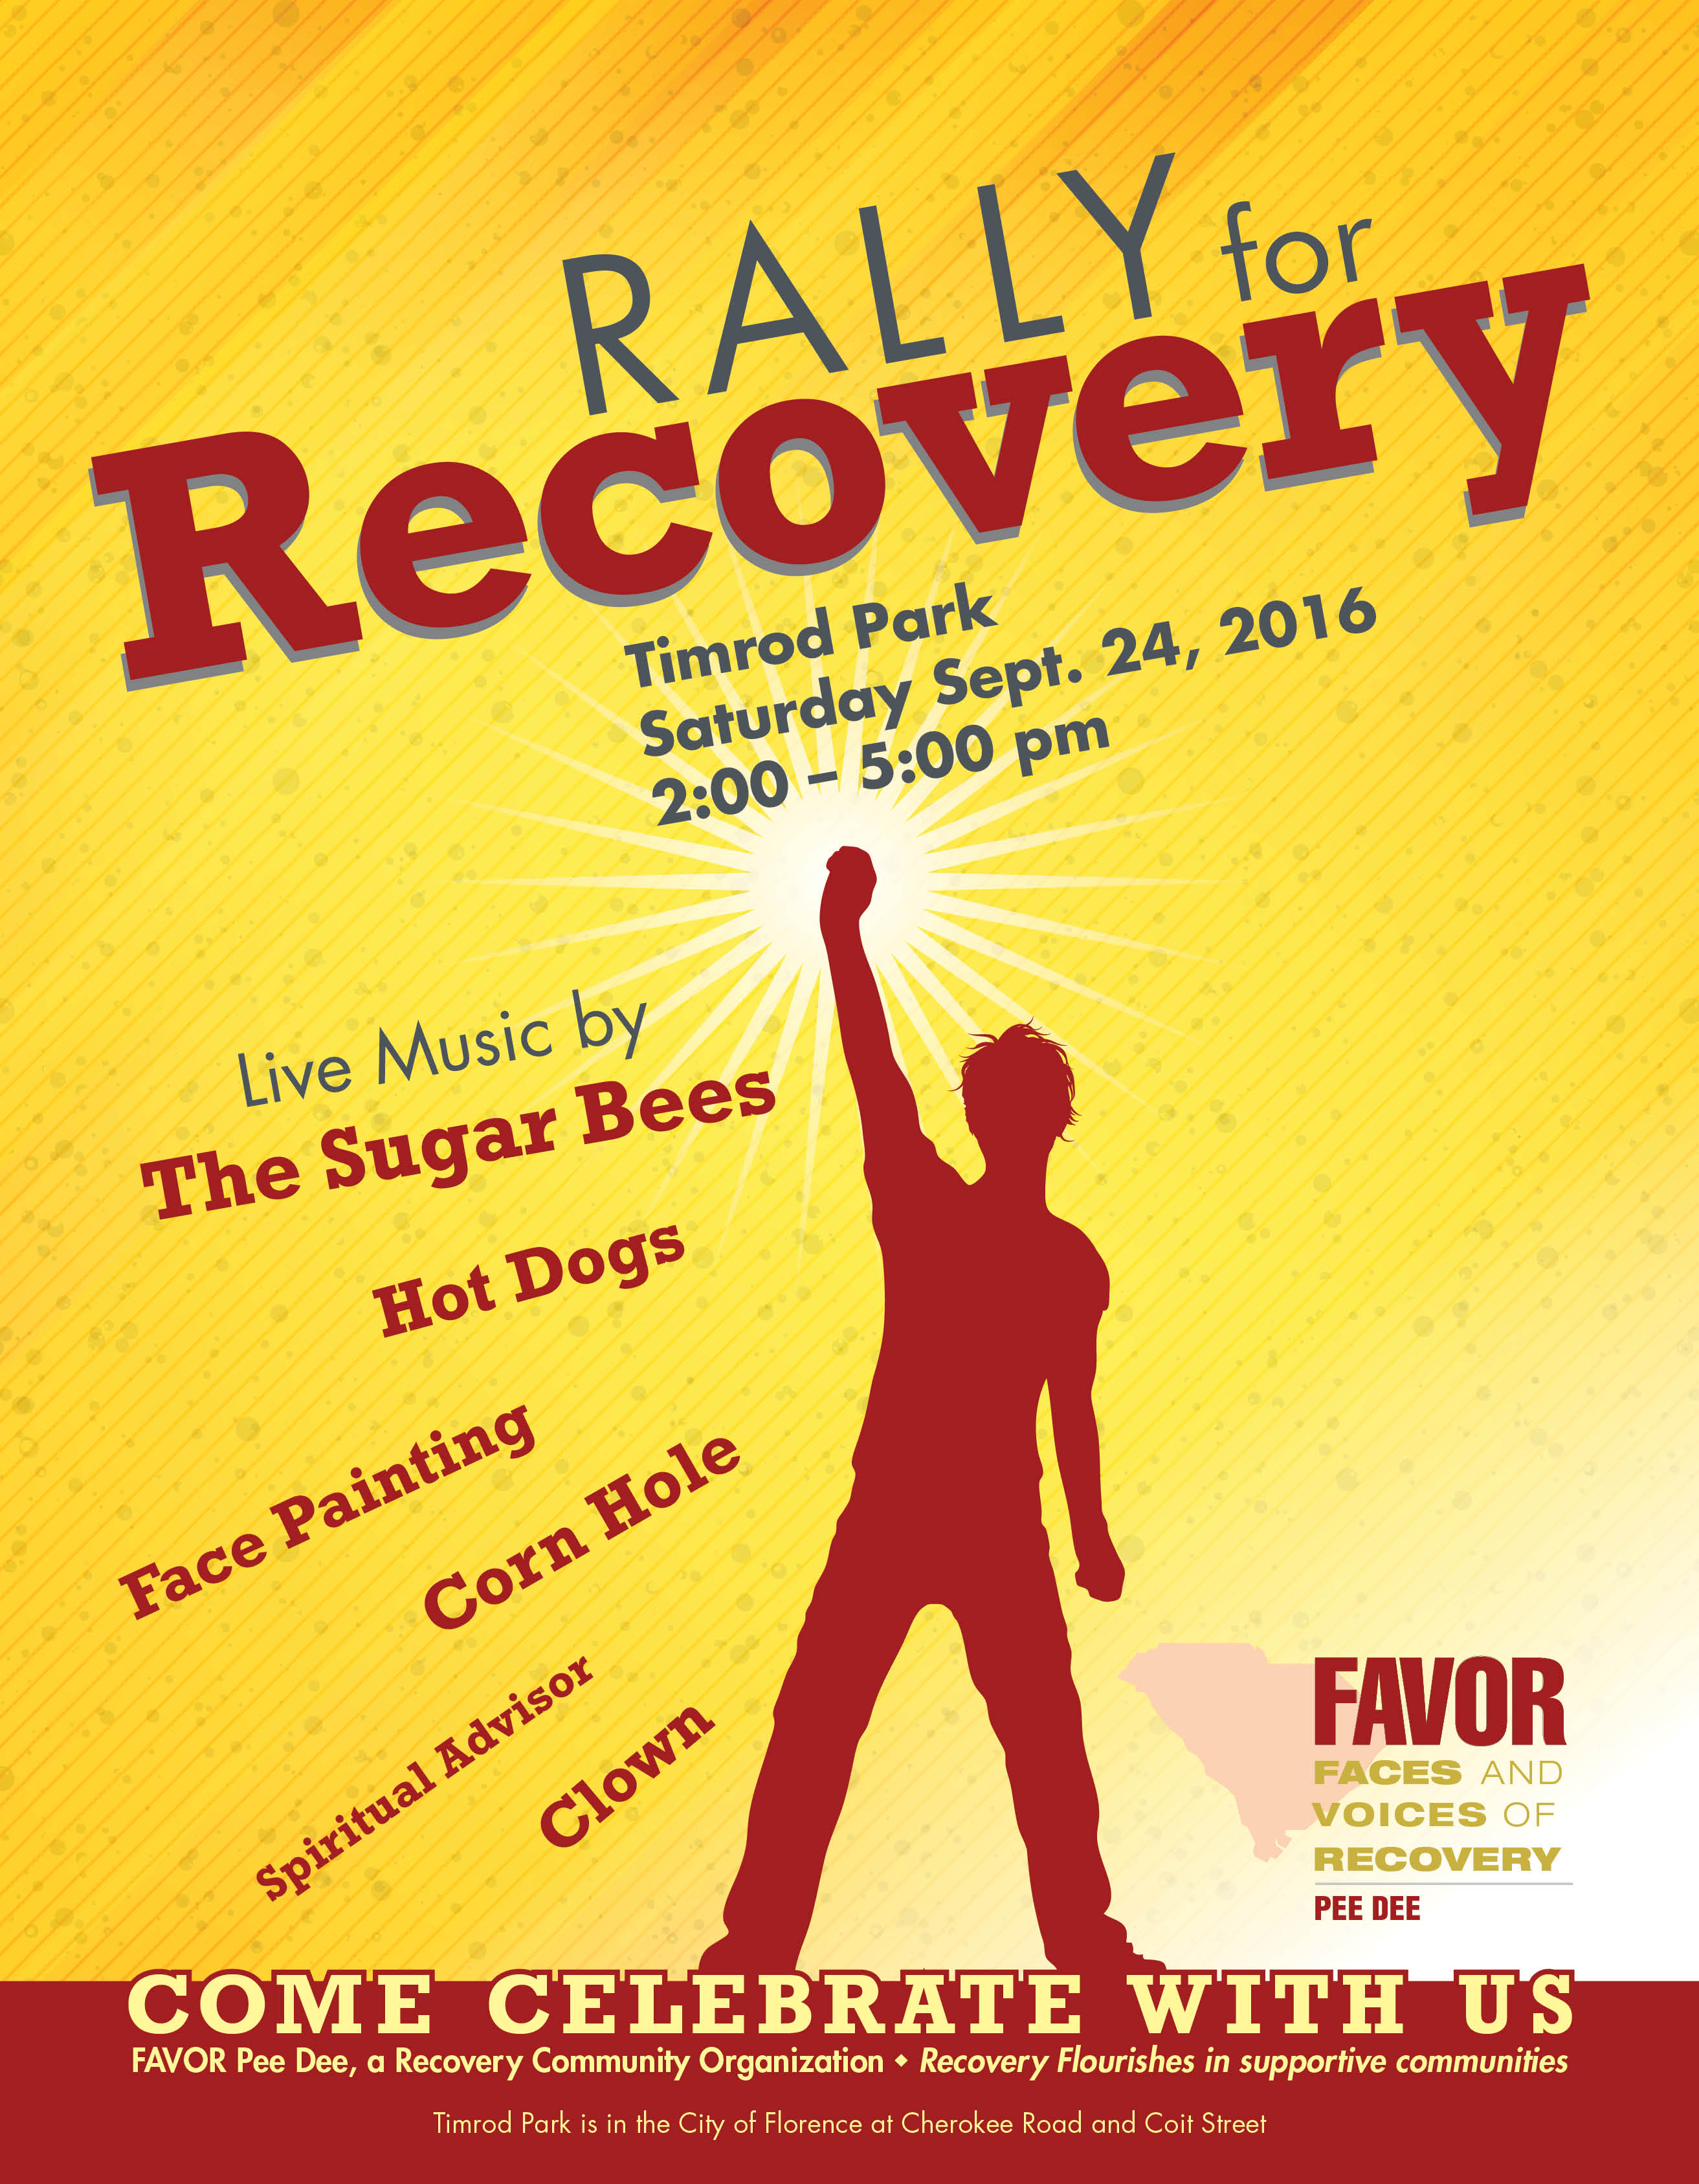 Rally for Recovery Pee Dee @ Timrod Park | Florence | South Carolina | United States